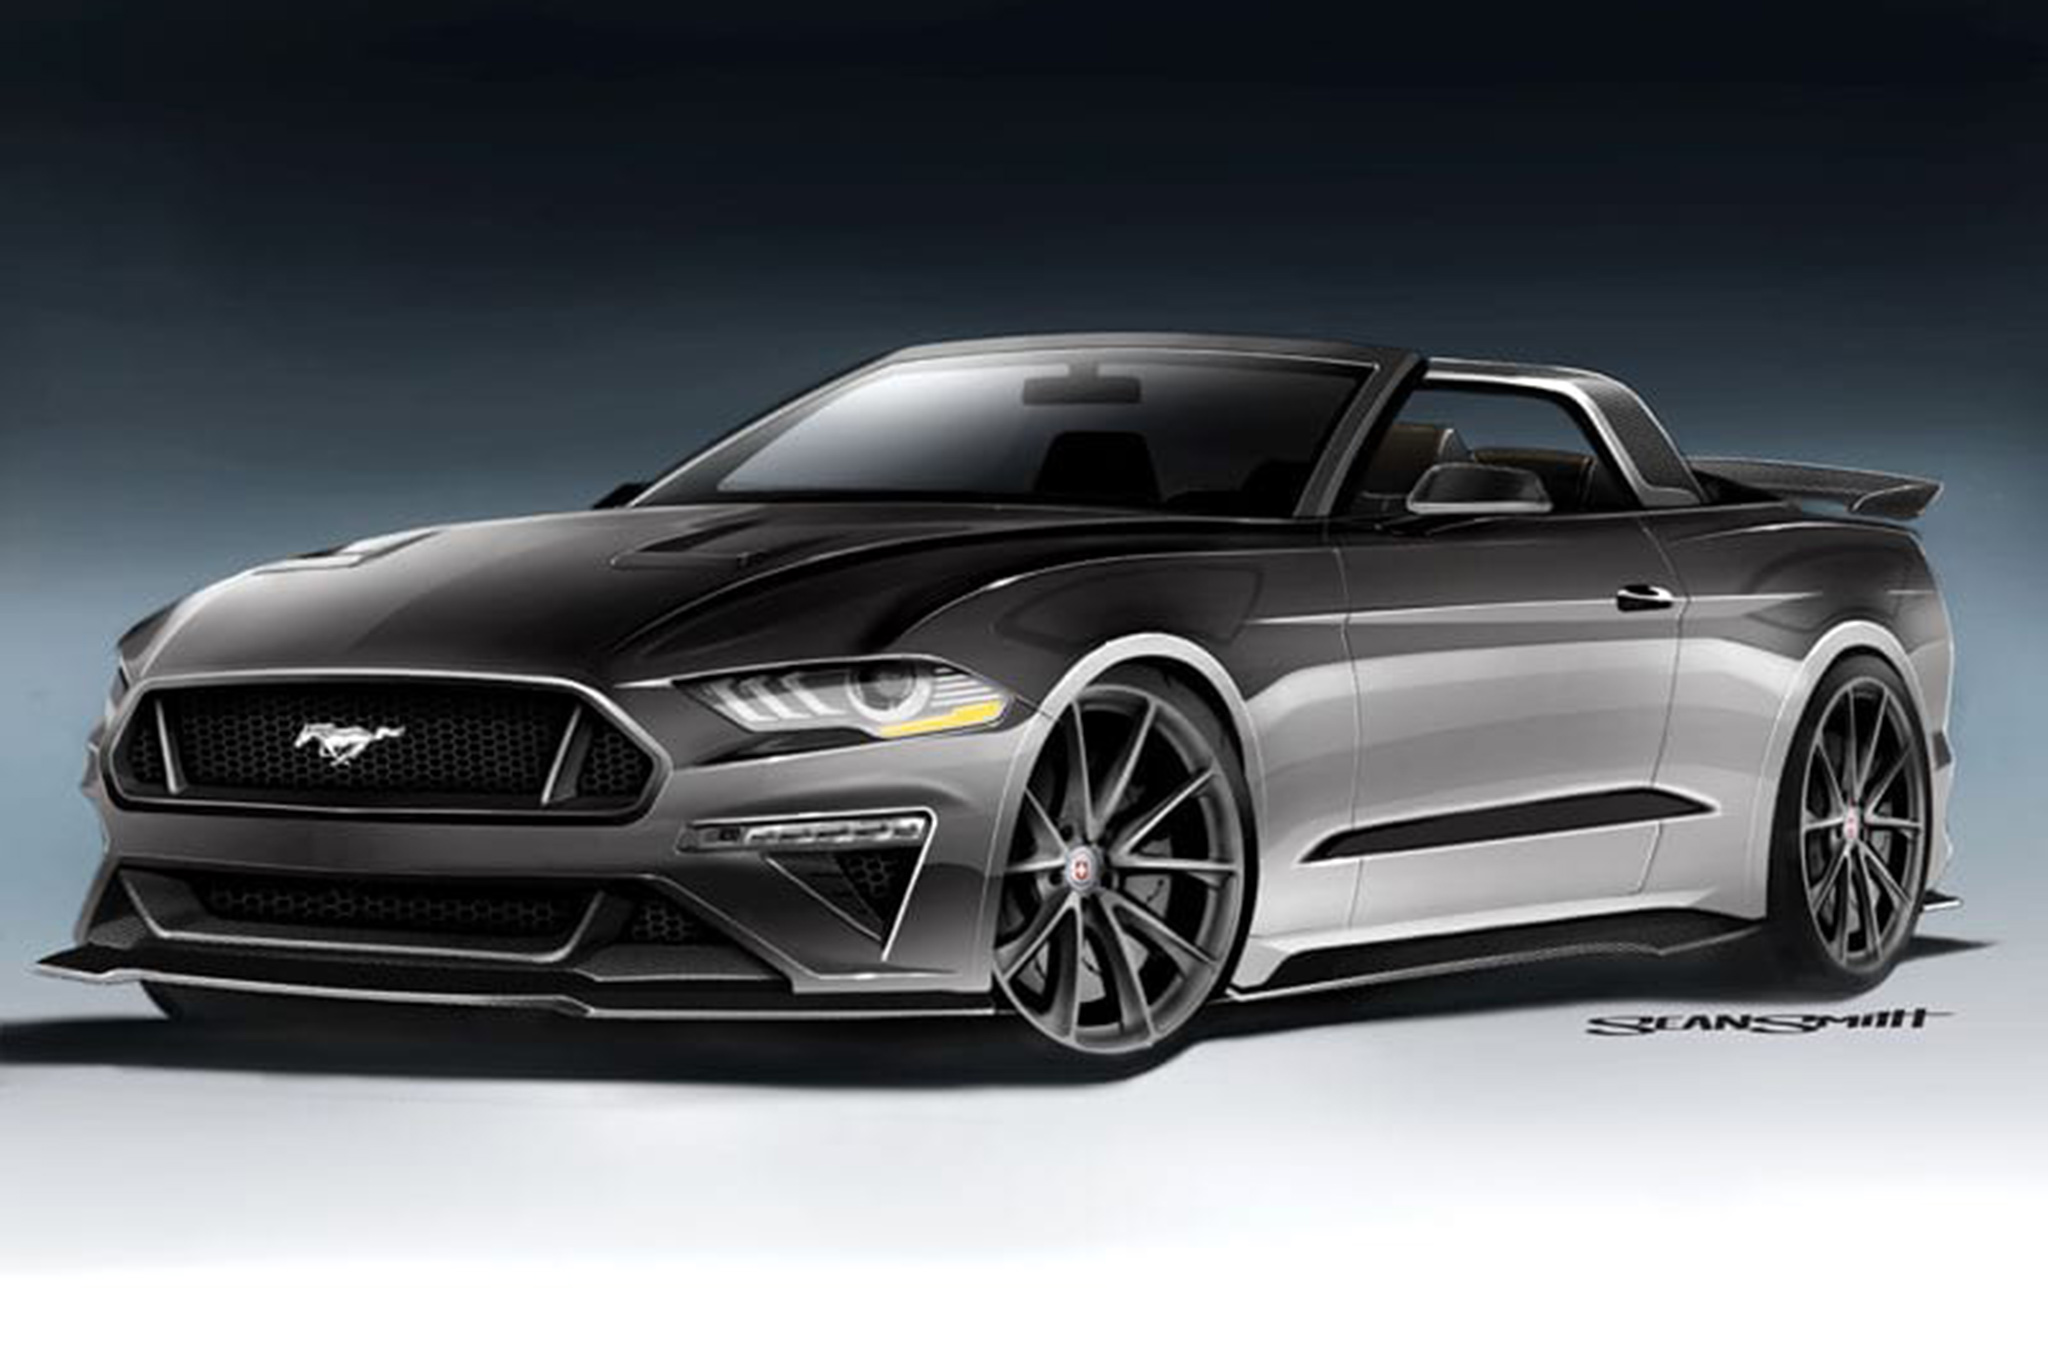 Speedkore Performance Groups Mustang GT Convertible Sports Carbon Fiber Aero Touches An Upgraded Suspension And Powertrain Enhancements To Its 50 Liter